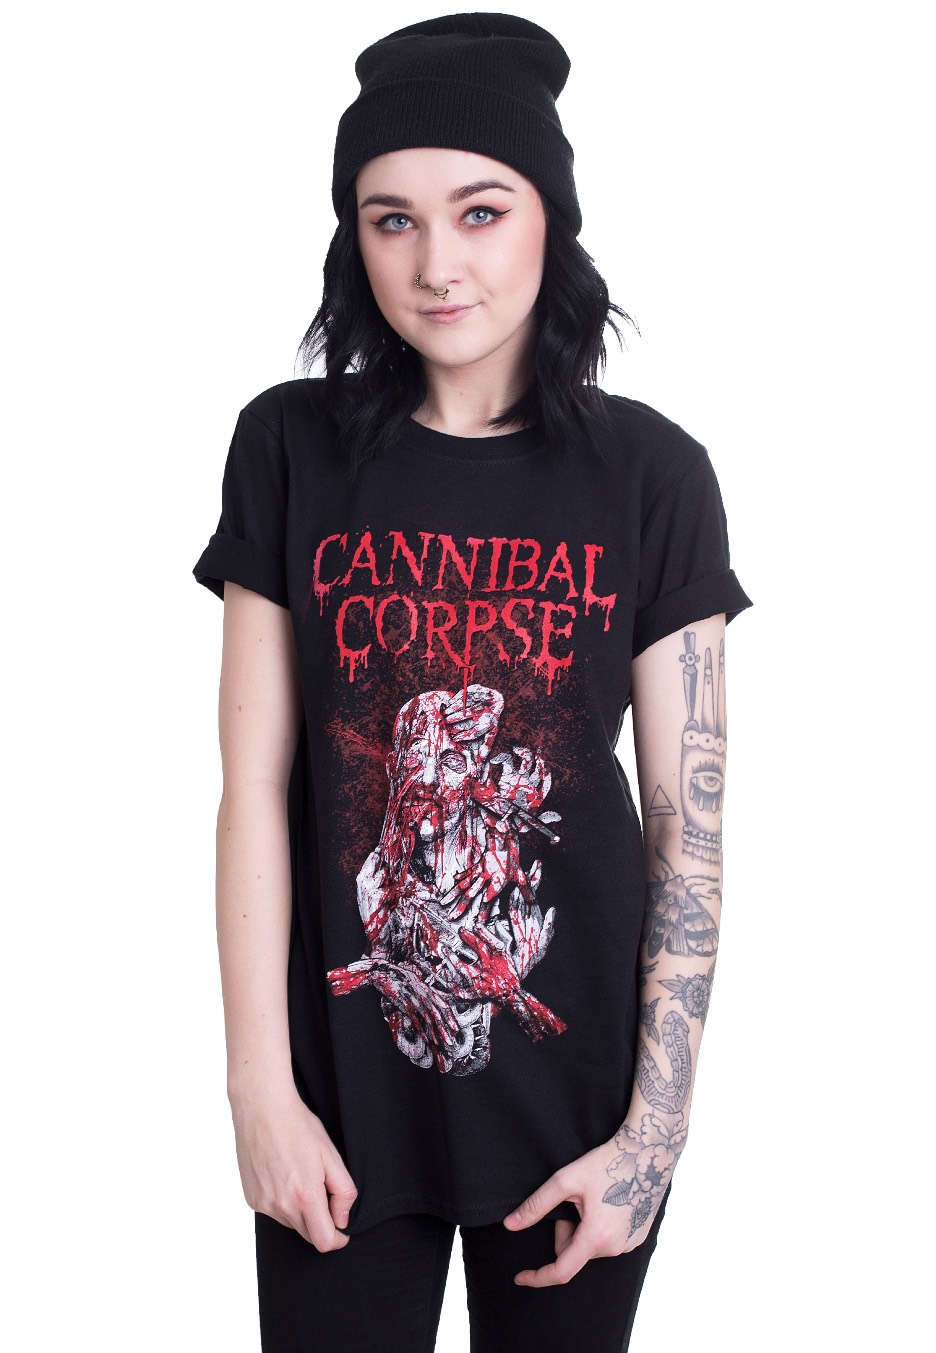 Cannibal Corpse - Stabhead 1 - T-Shirt - Official Metal Merchandise Shop -  Impericon.com US 8269616316c